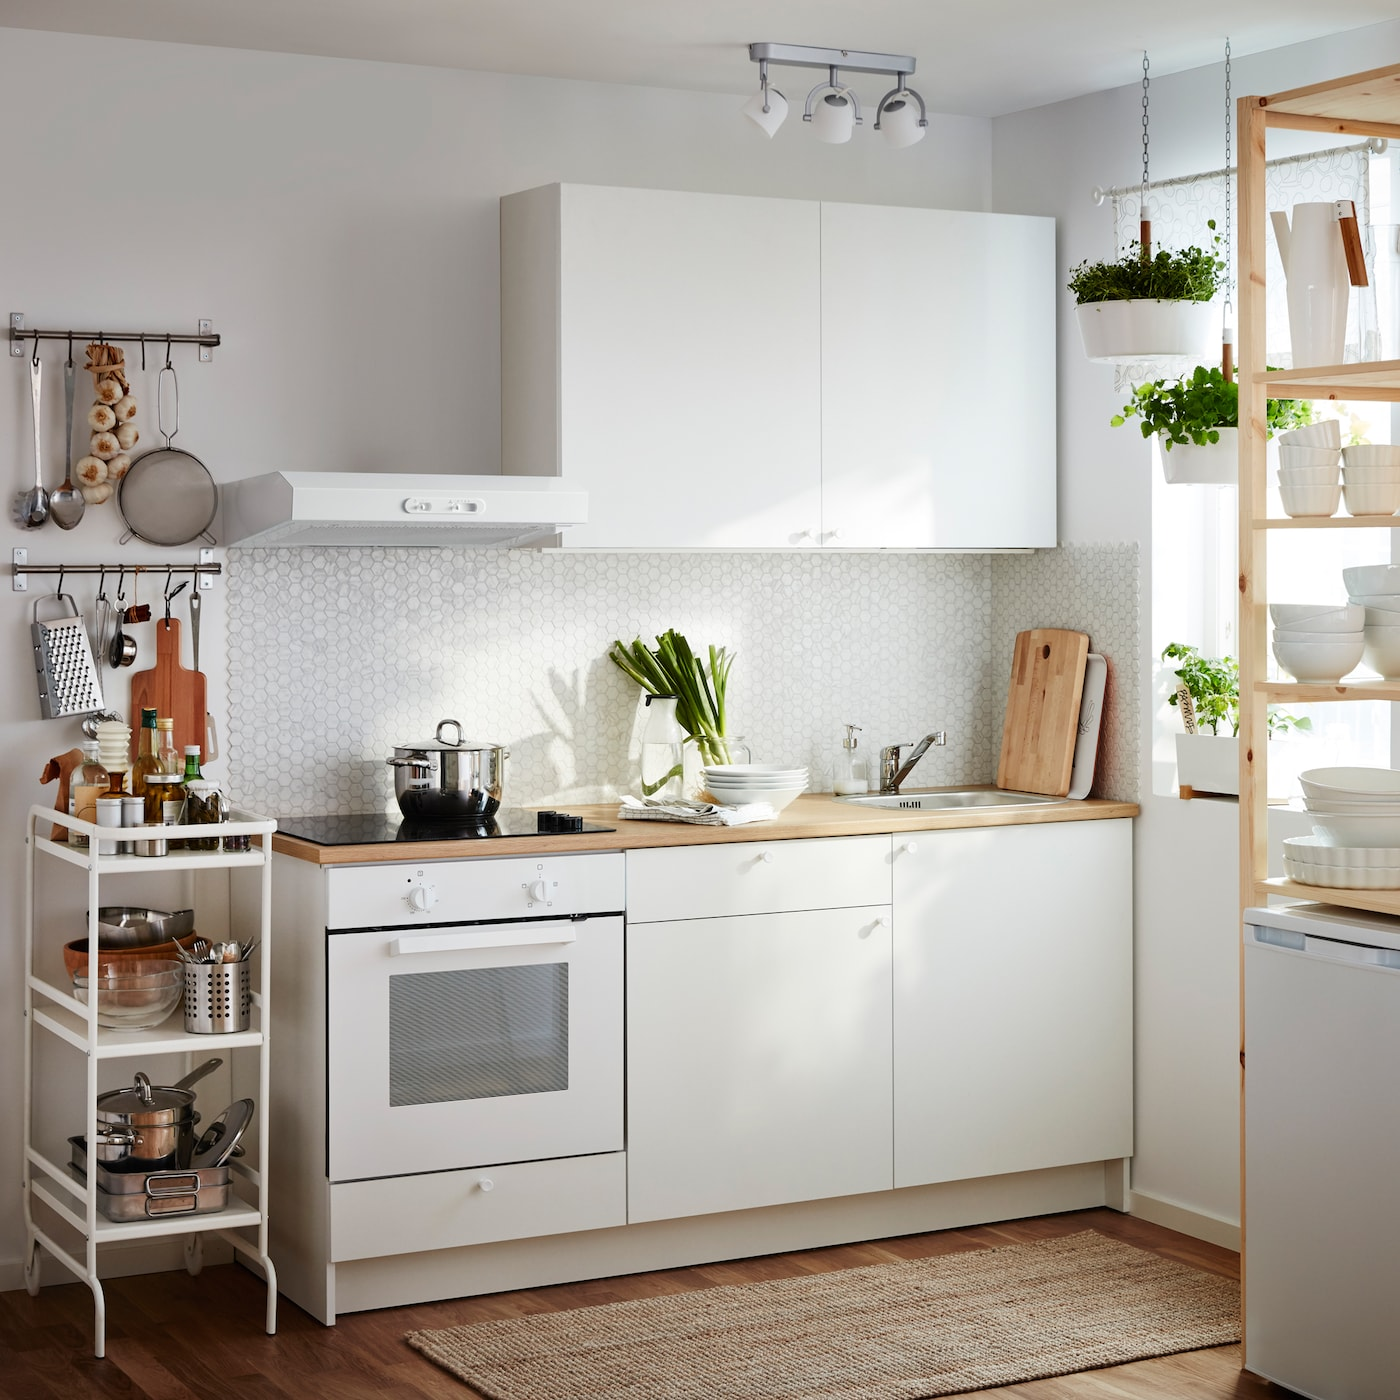 All-in-one kitchen in four square metres - IKEA